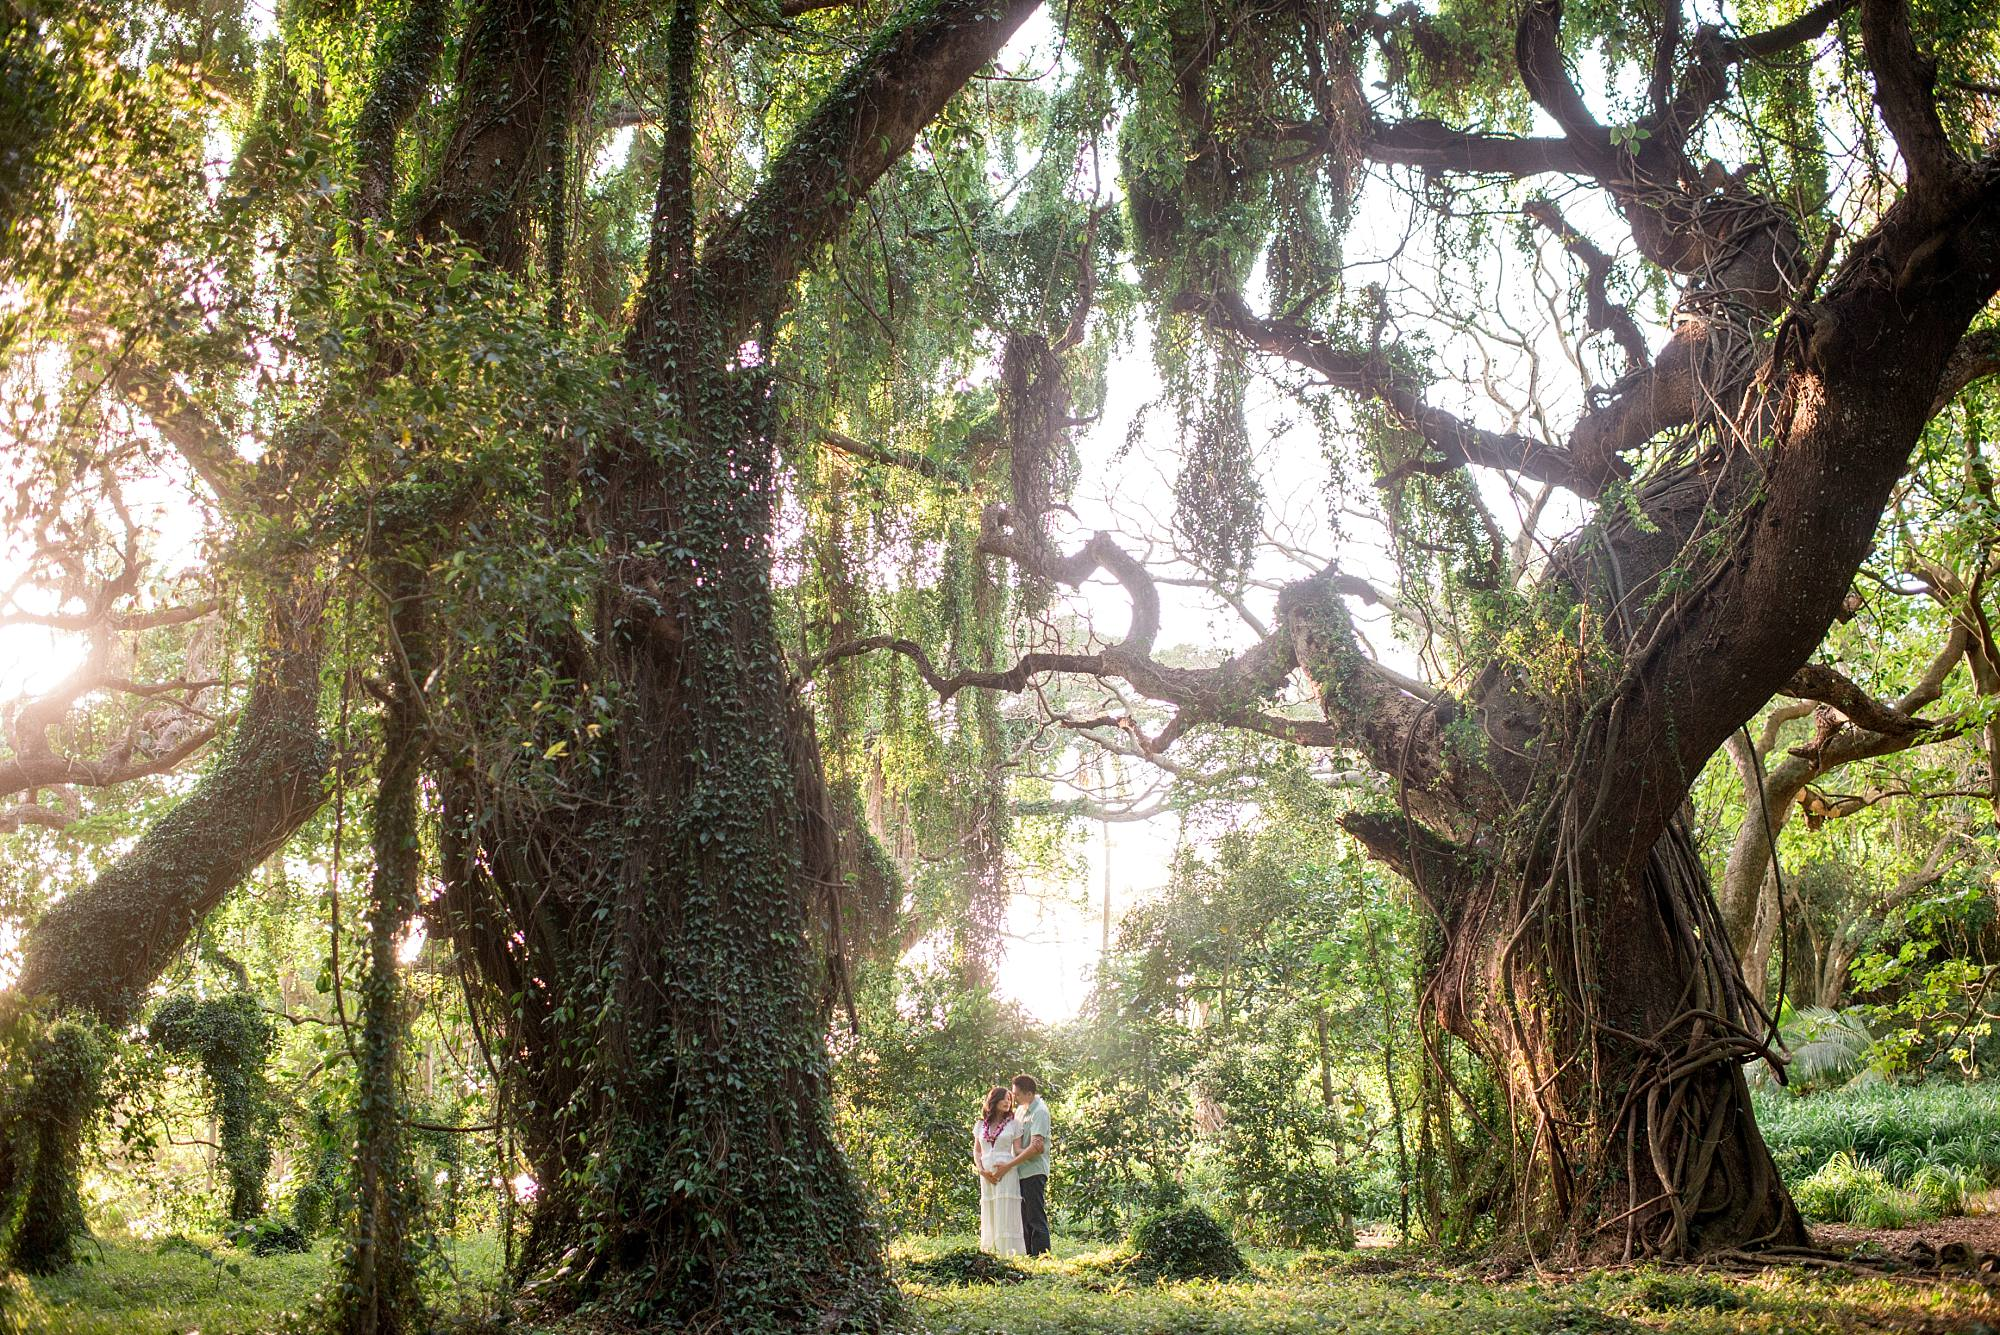 Husband and wife hugging in between the trees